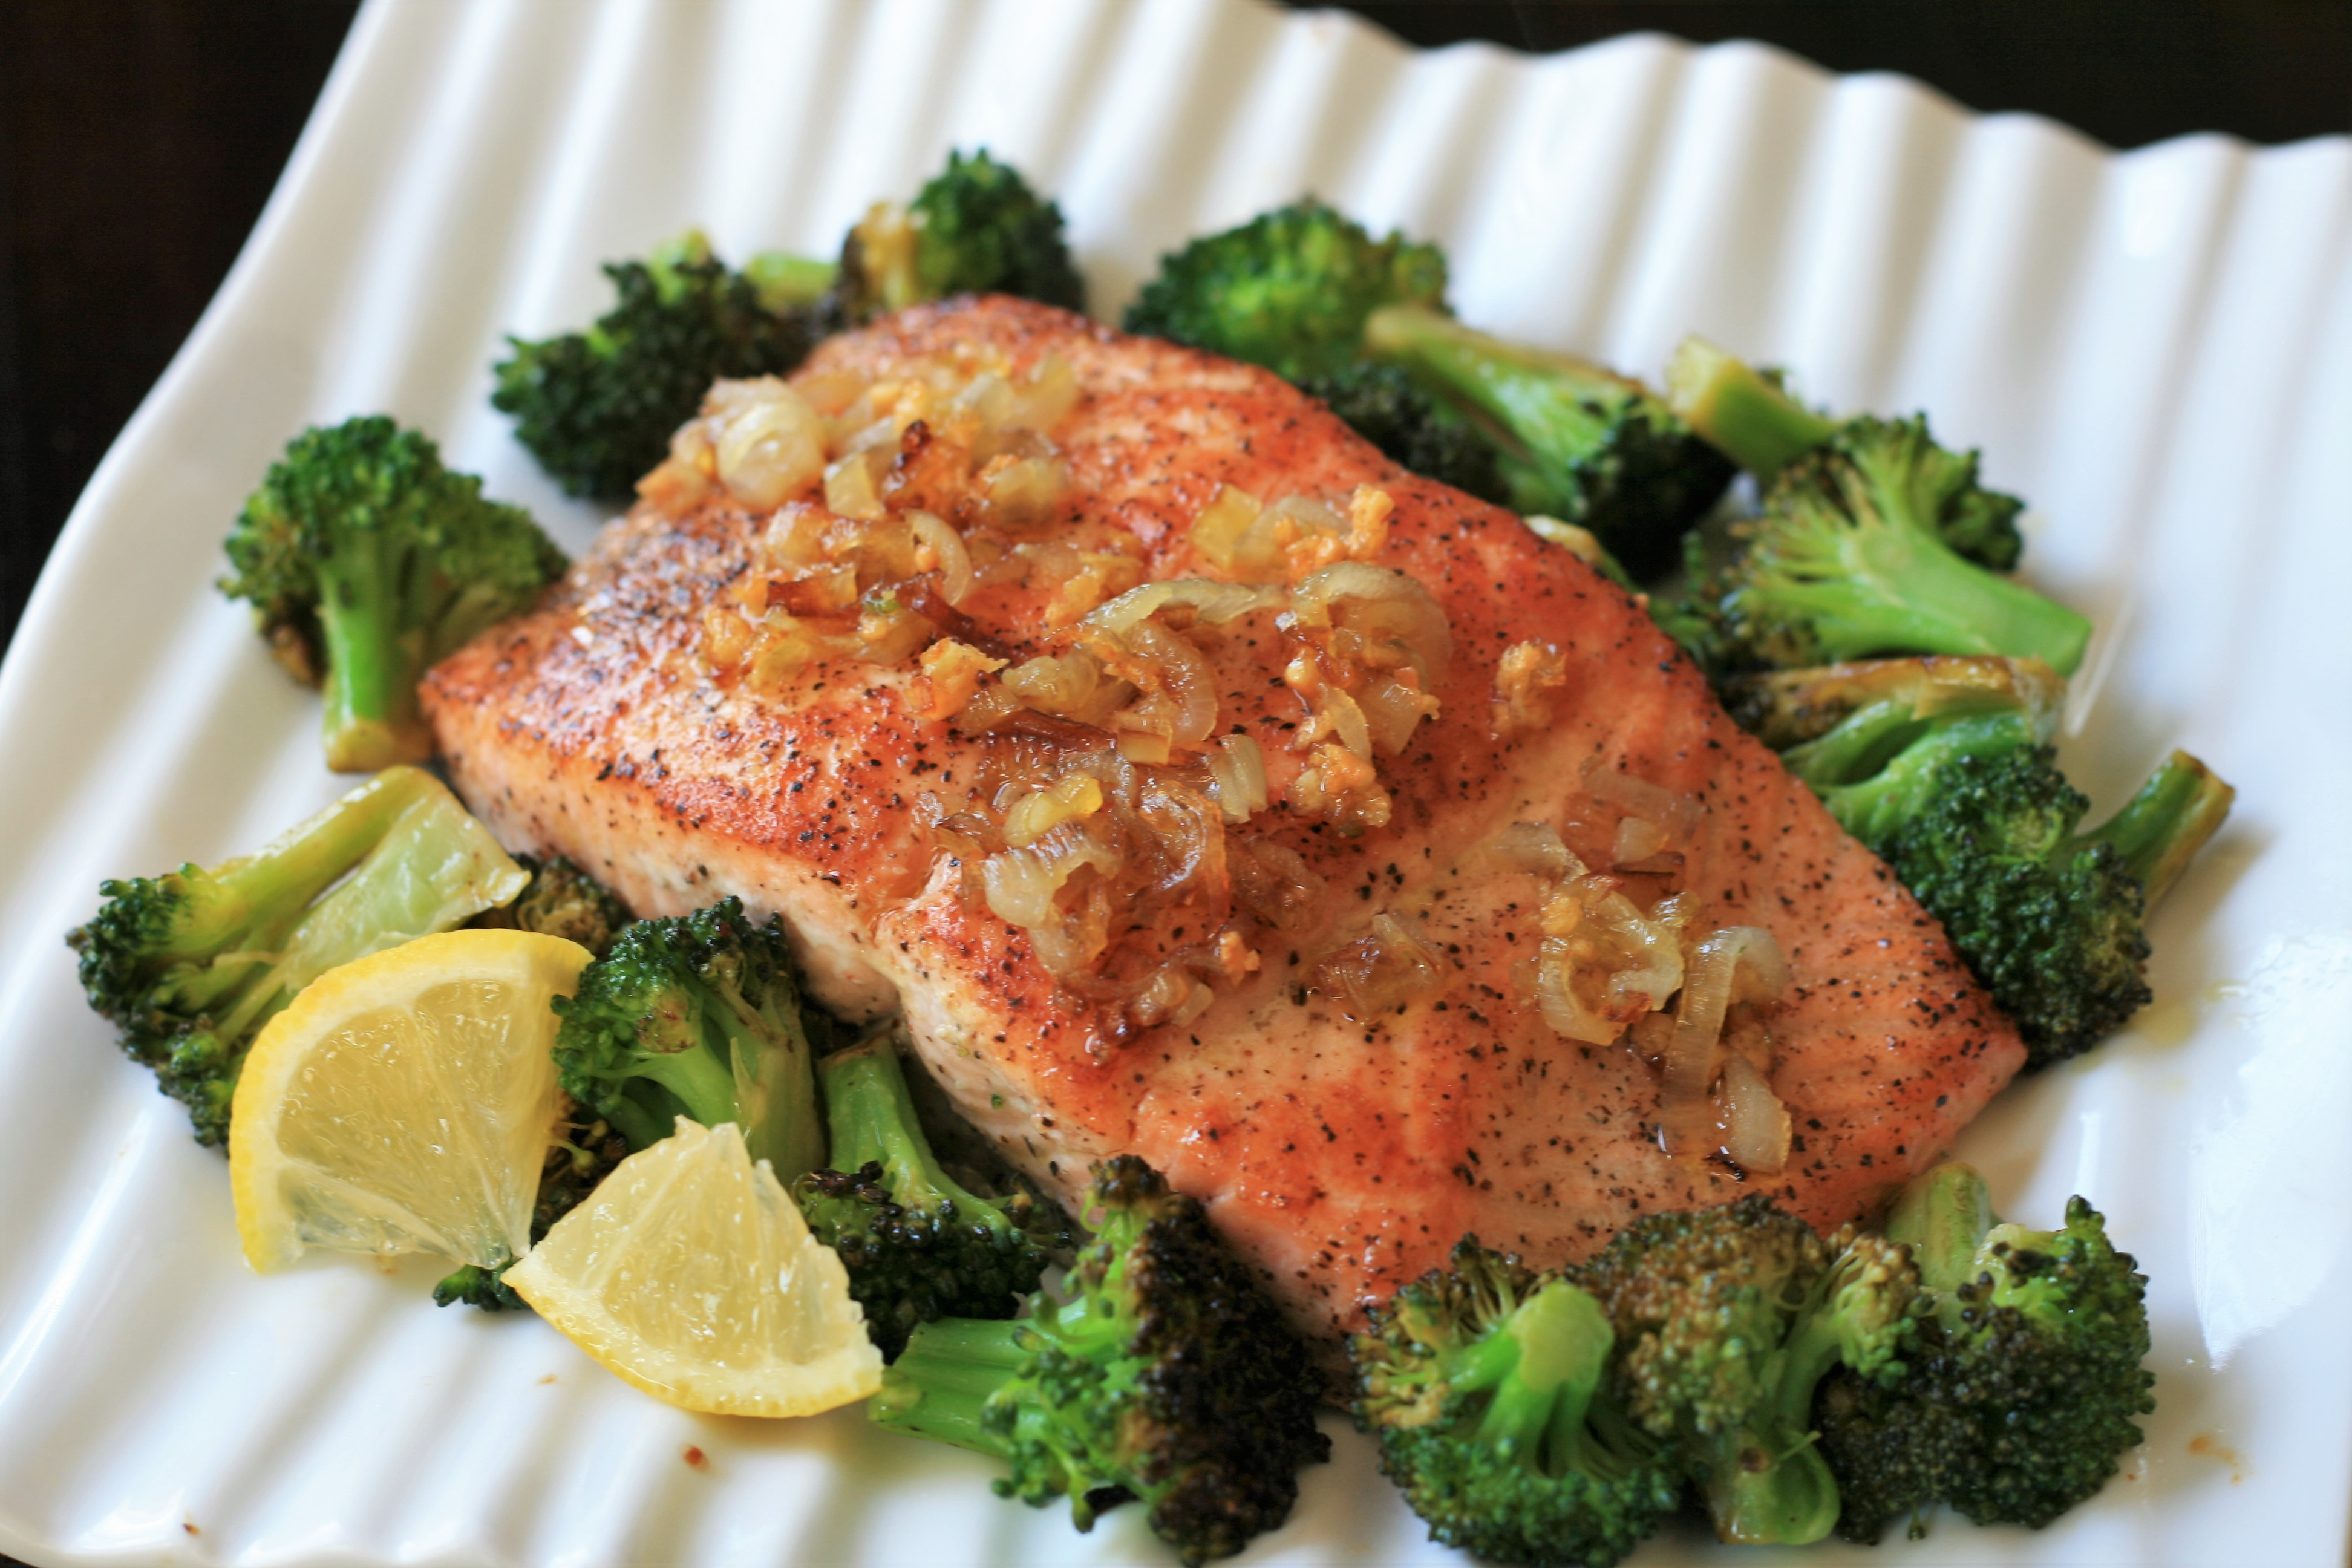 Steamed Salmon with Broccoli and Shallots